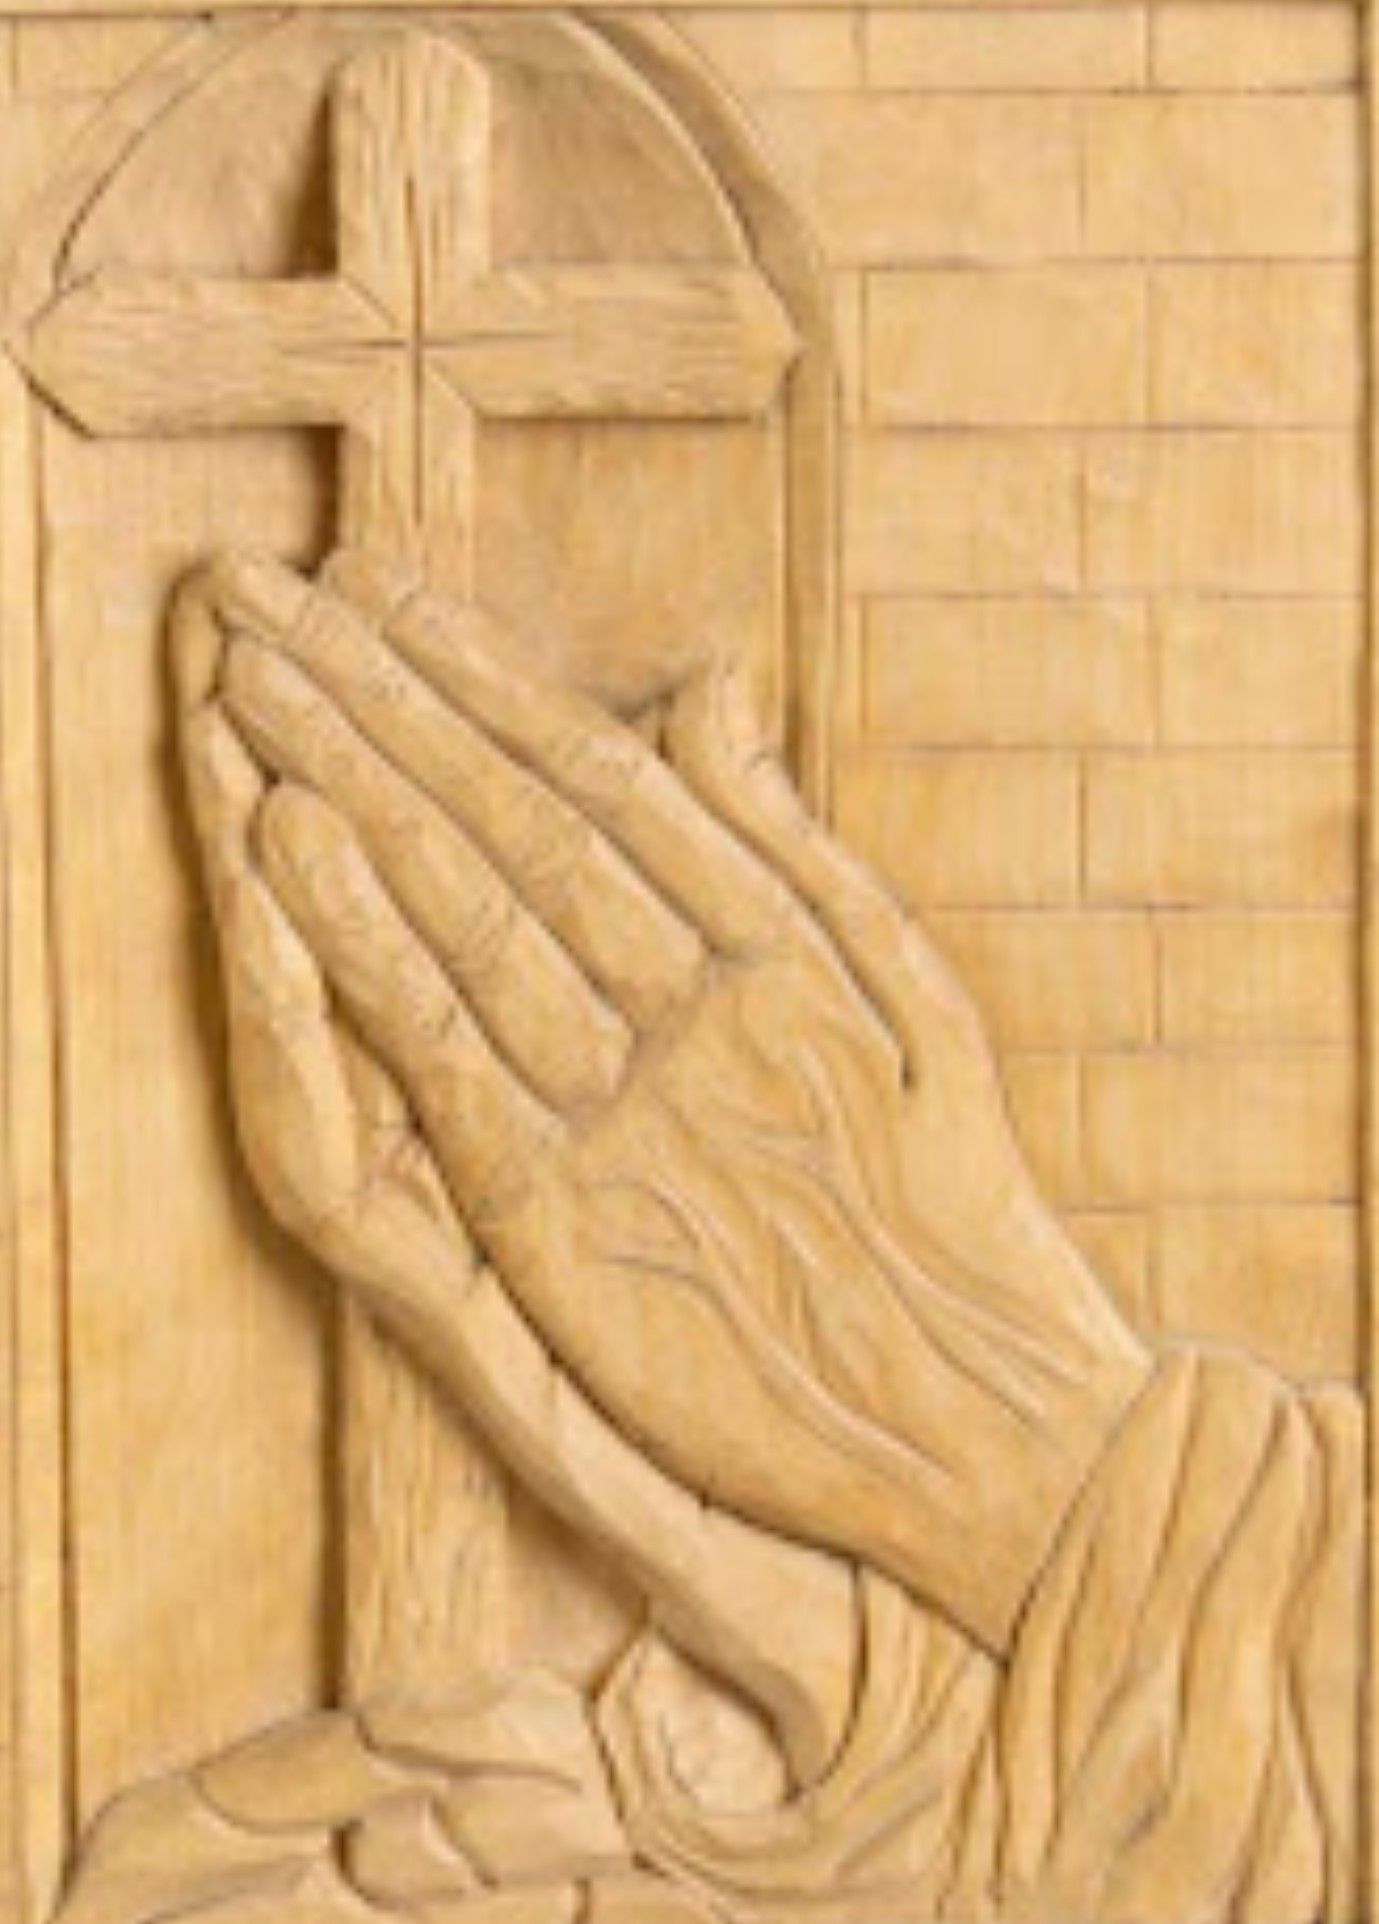 Pin di anselma e gianni keller su sculture carving wood